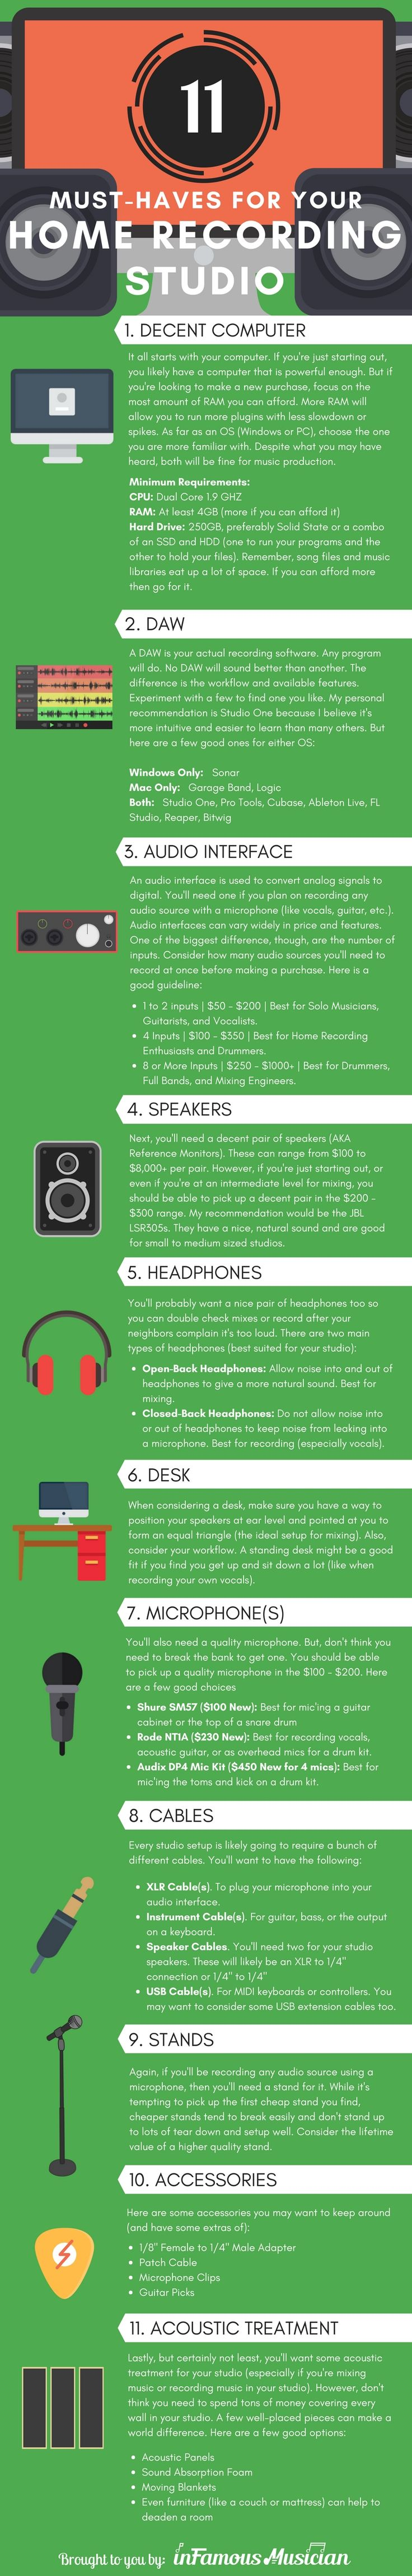 Home Recording Studio Equipment [Infographic] http://www.infamousmusician.com/home-recording-studio-equipment/ #homerecording